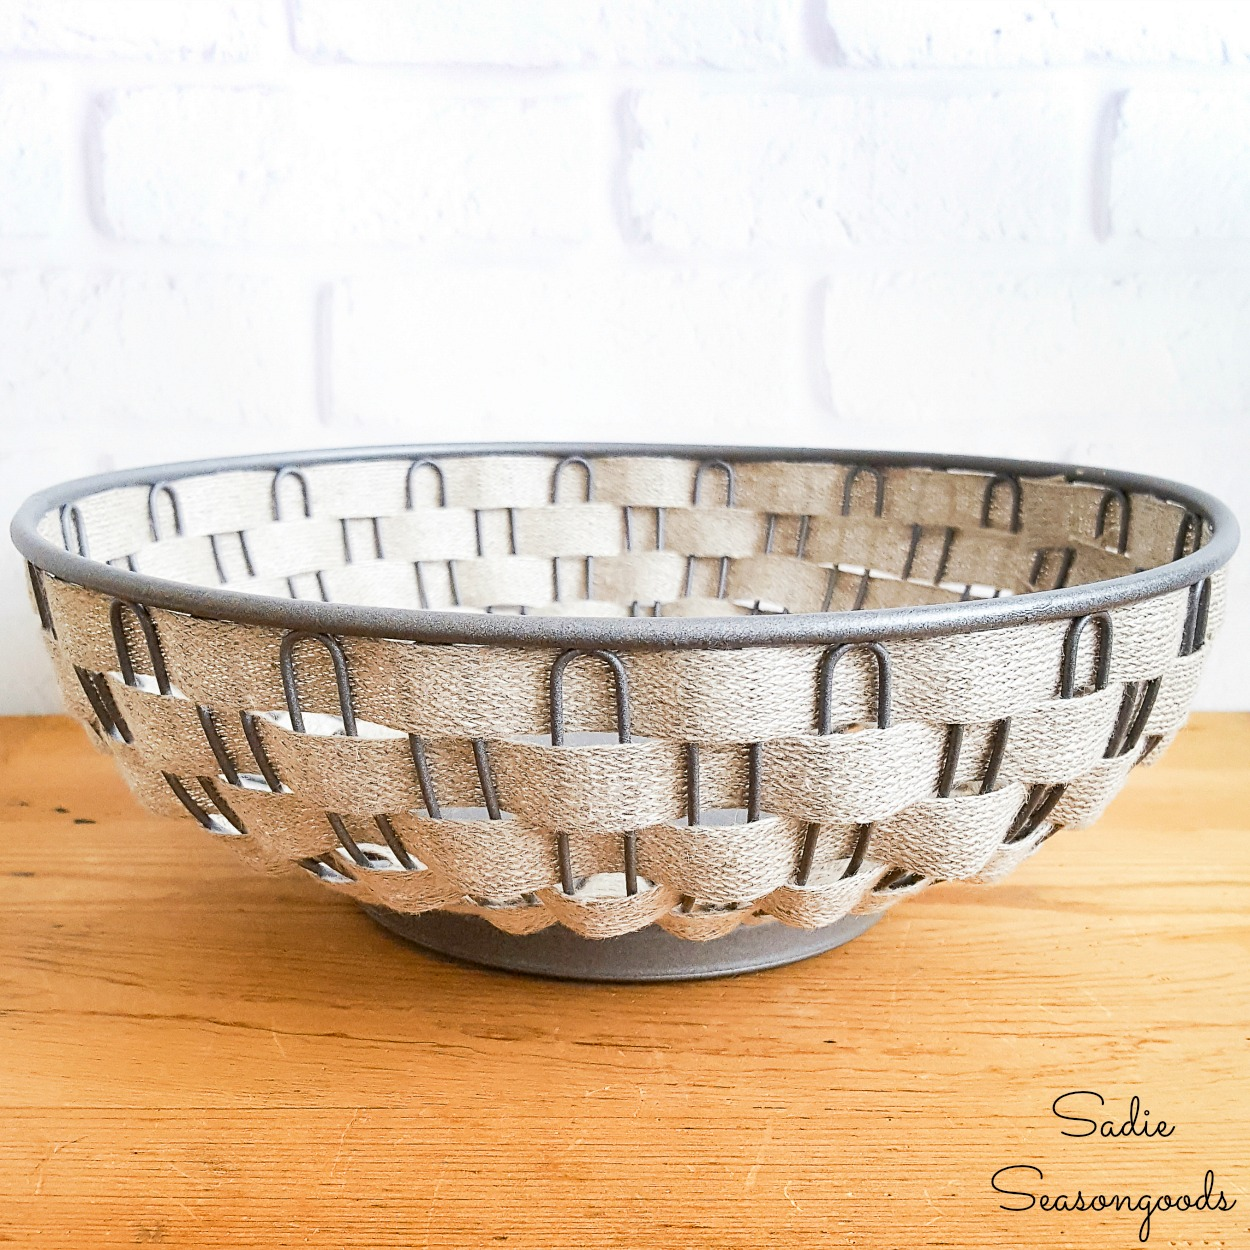 Upcycling a Wire Bread Basket into a Woven Bowl